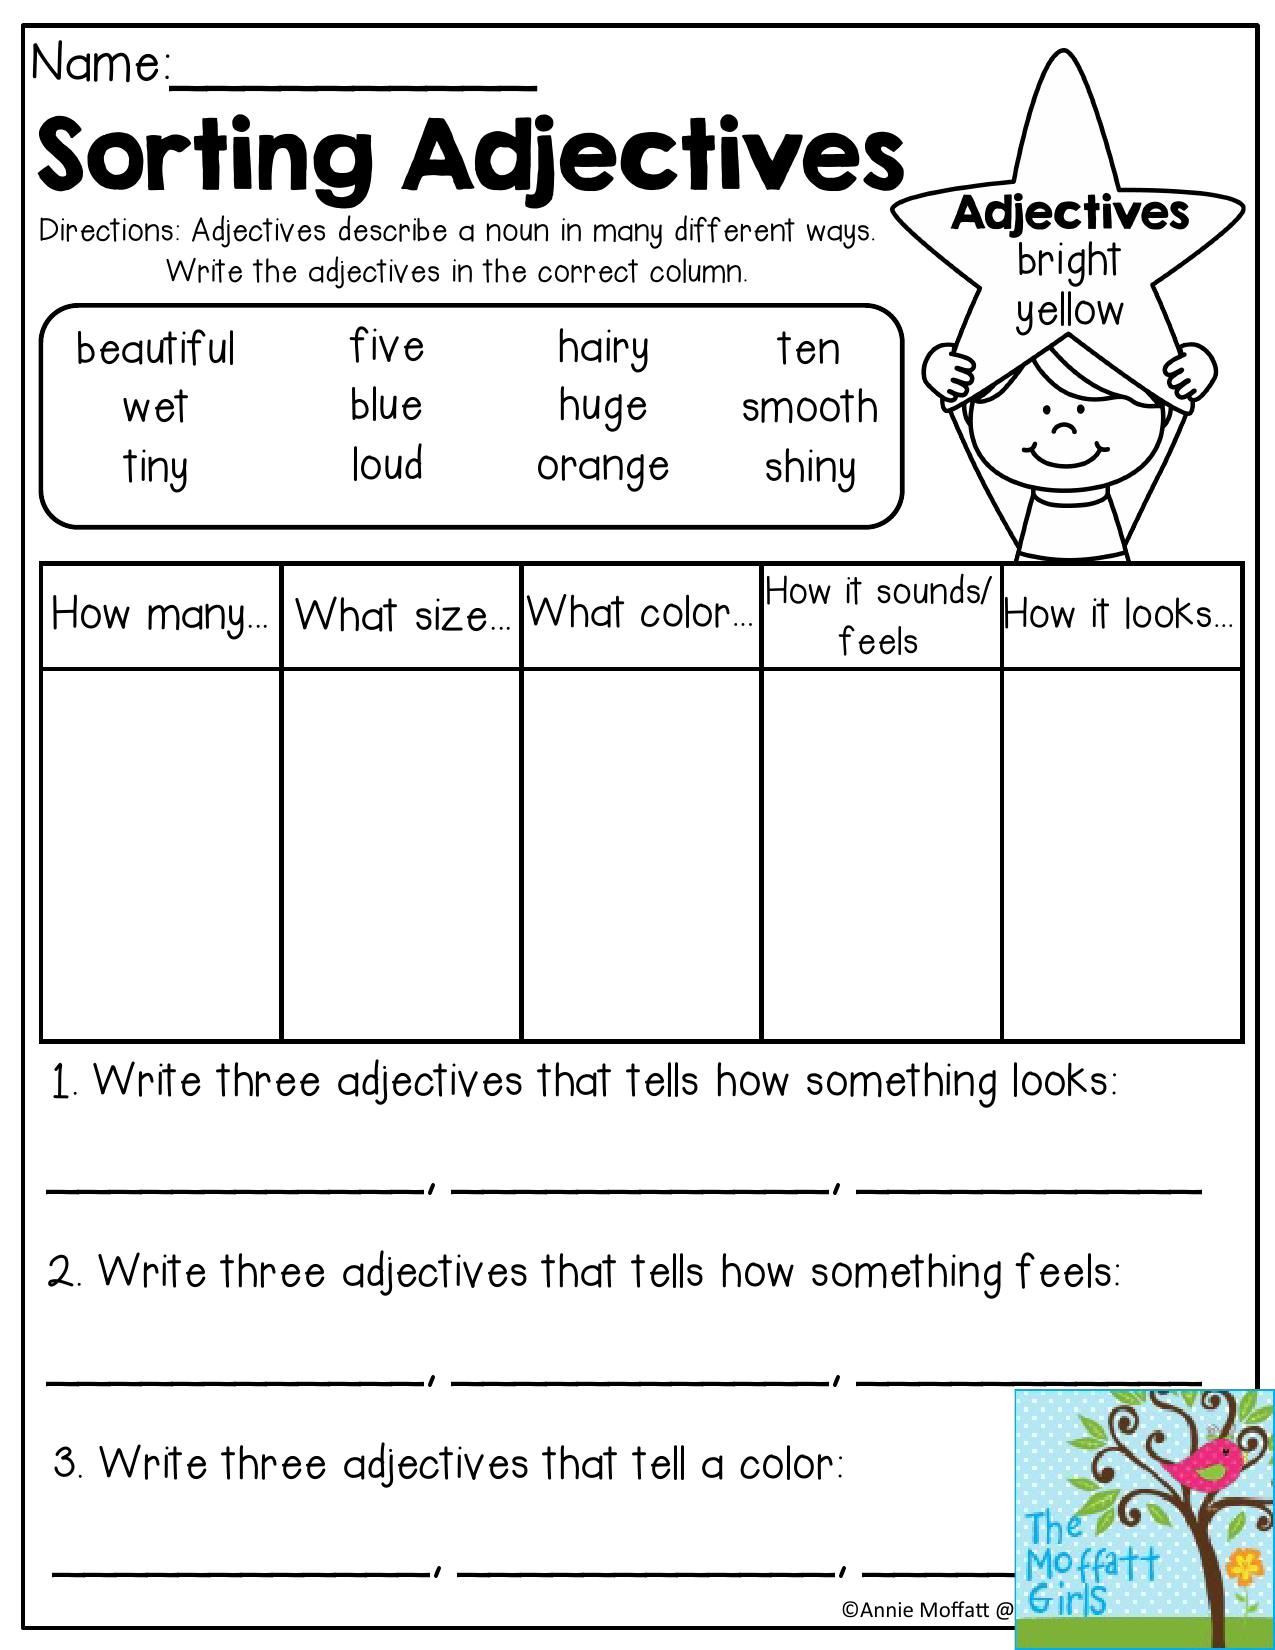 Adjective Worksheets 2nd Grade sorting Adjectives Adjectives Describe A Noun In Many